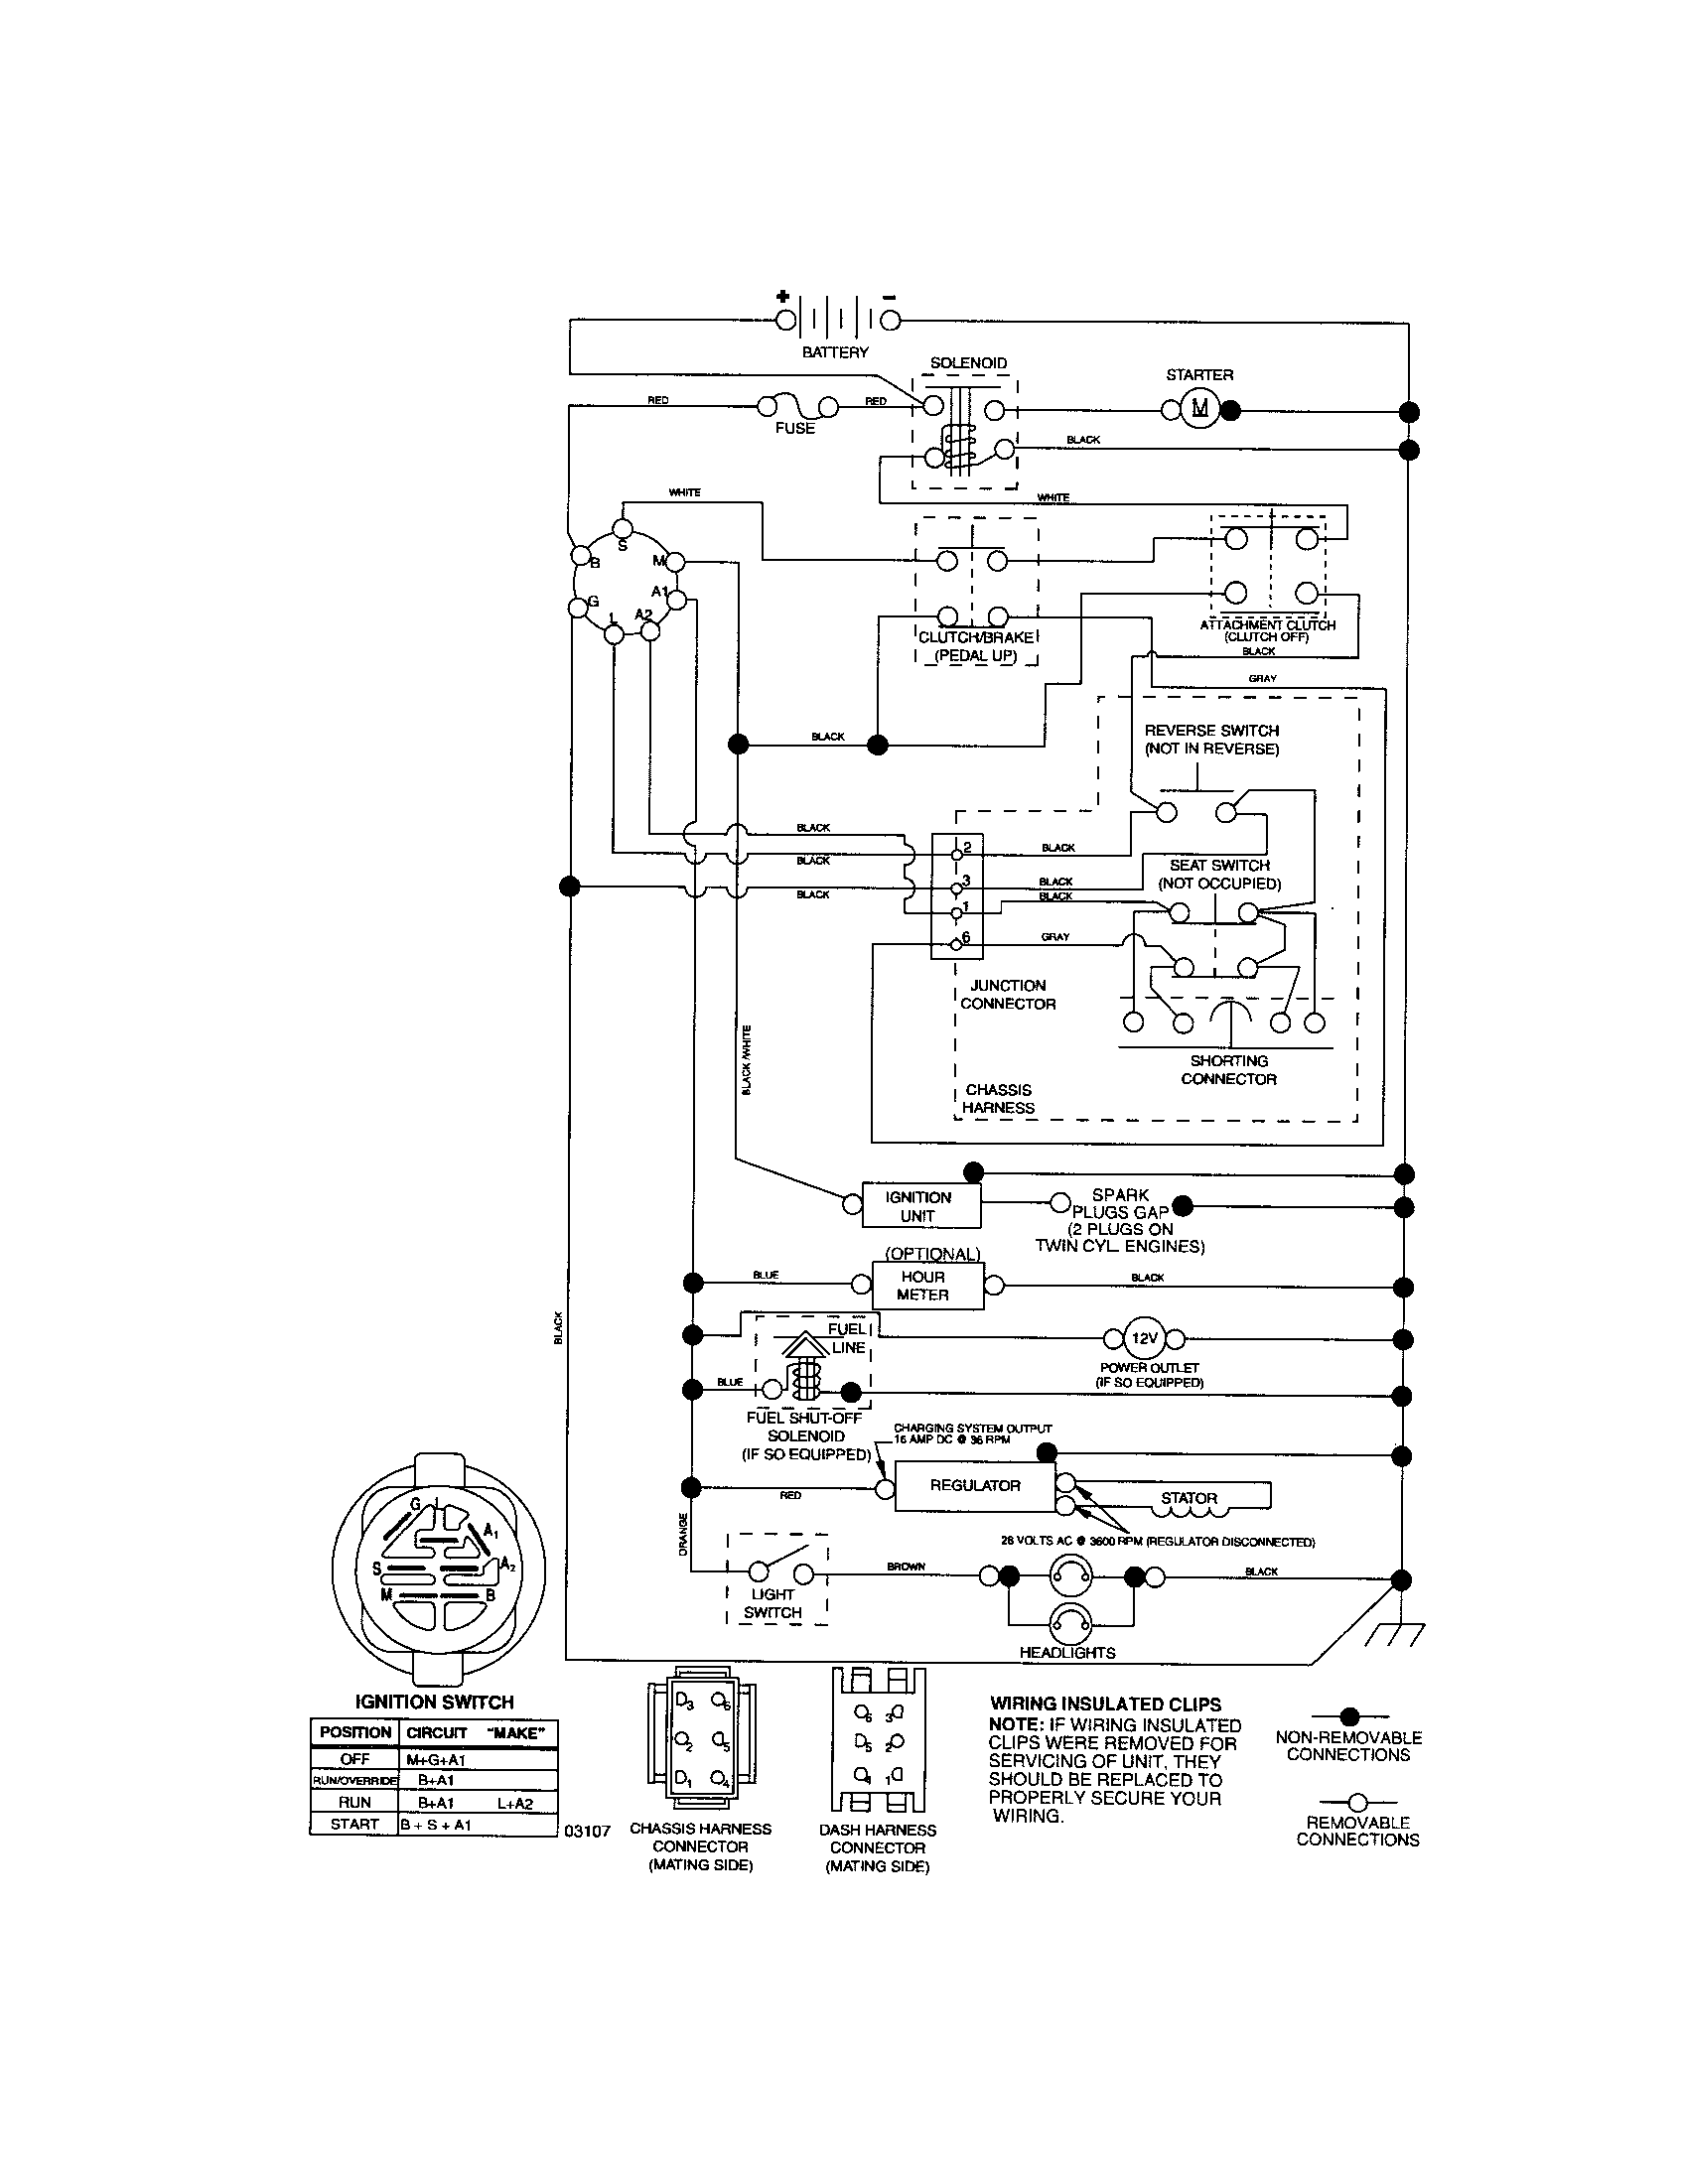 warren oil heater wiring diagram schematic wiring diagram libraries craftsman riding mower electrical diagram wiring diagram craftsmancraftsman riding mower electrical diagram wiring diagram craftsman riding